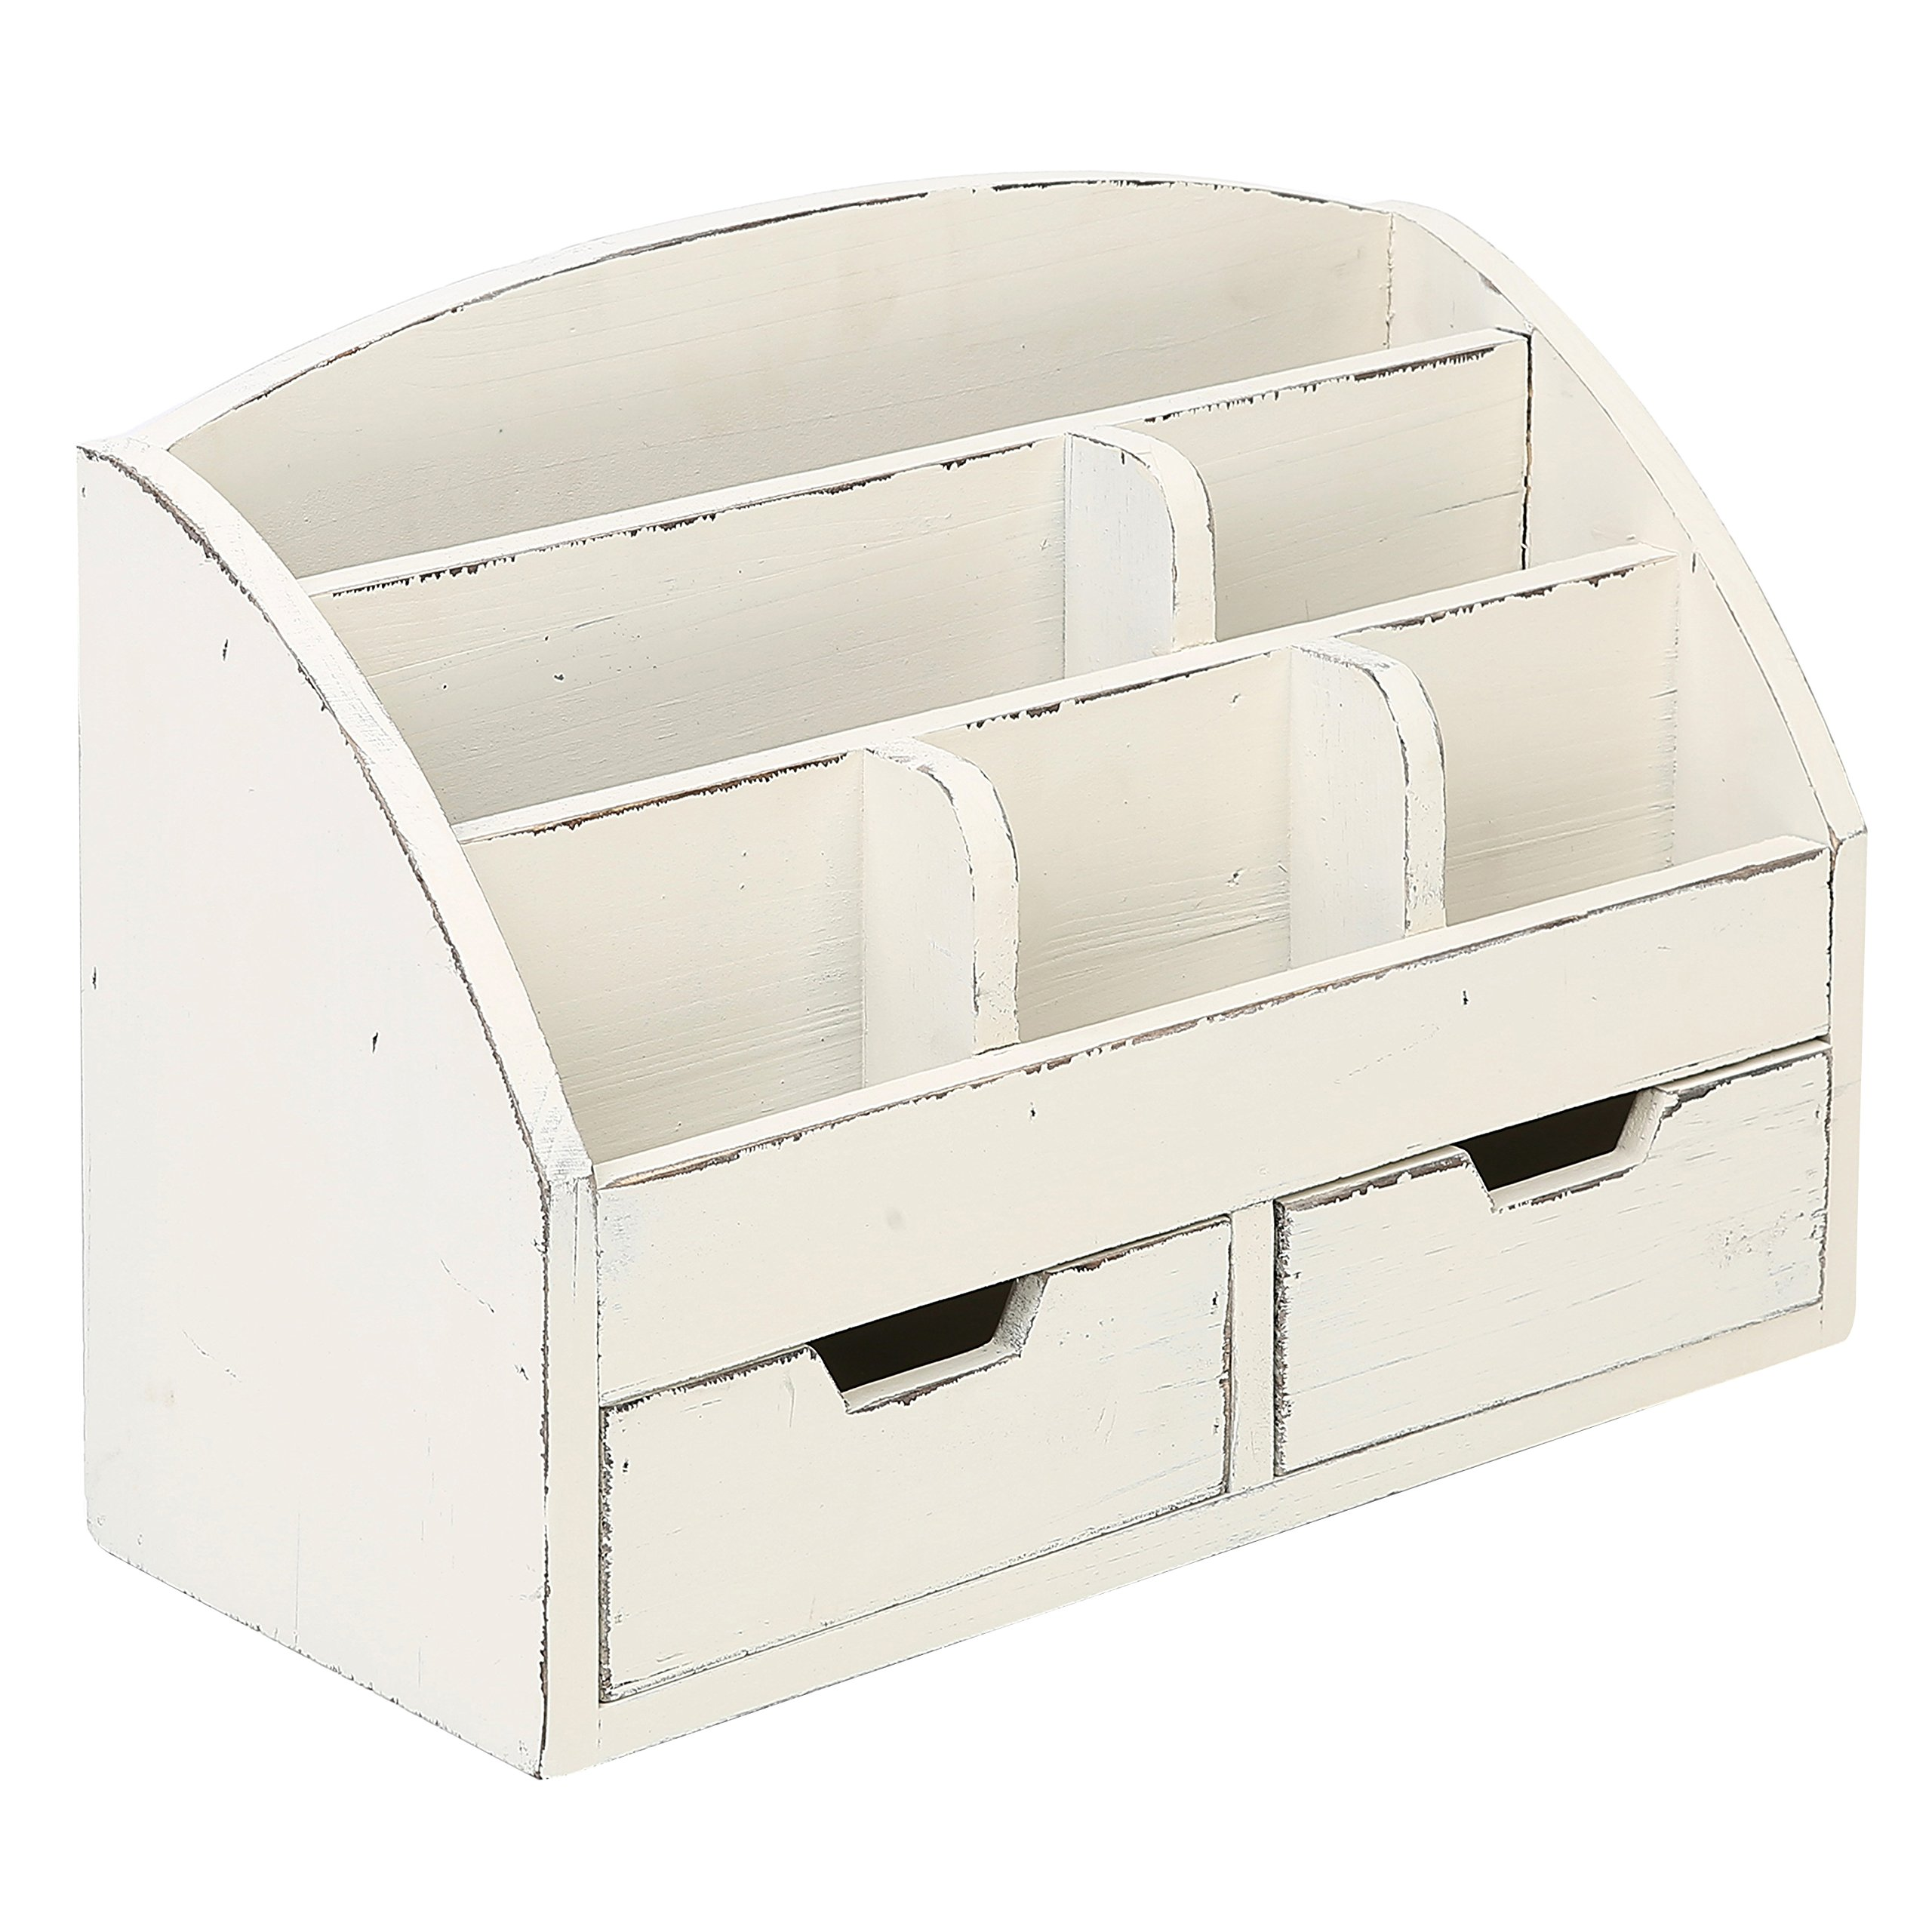 MyGift Vintage White Wood Desk Organizer / 6 Compartment, 2 Drawer Office Supplies Cabinet by MyGift